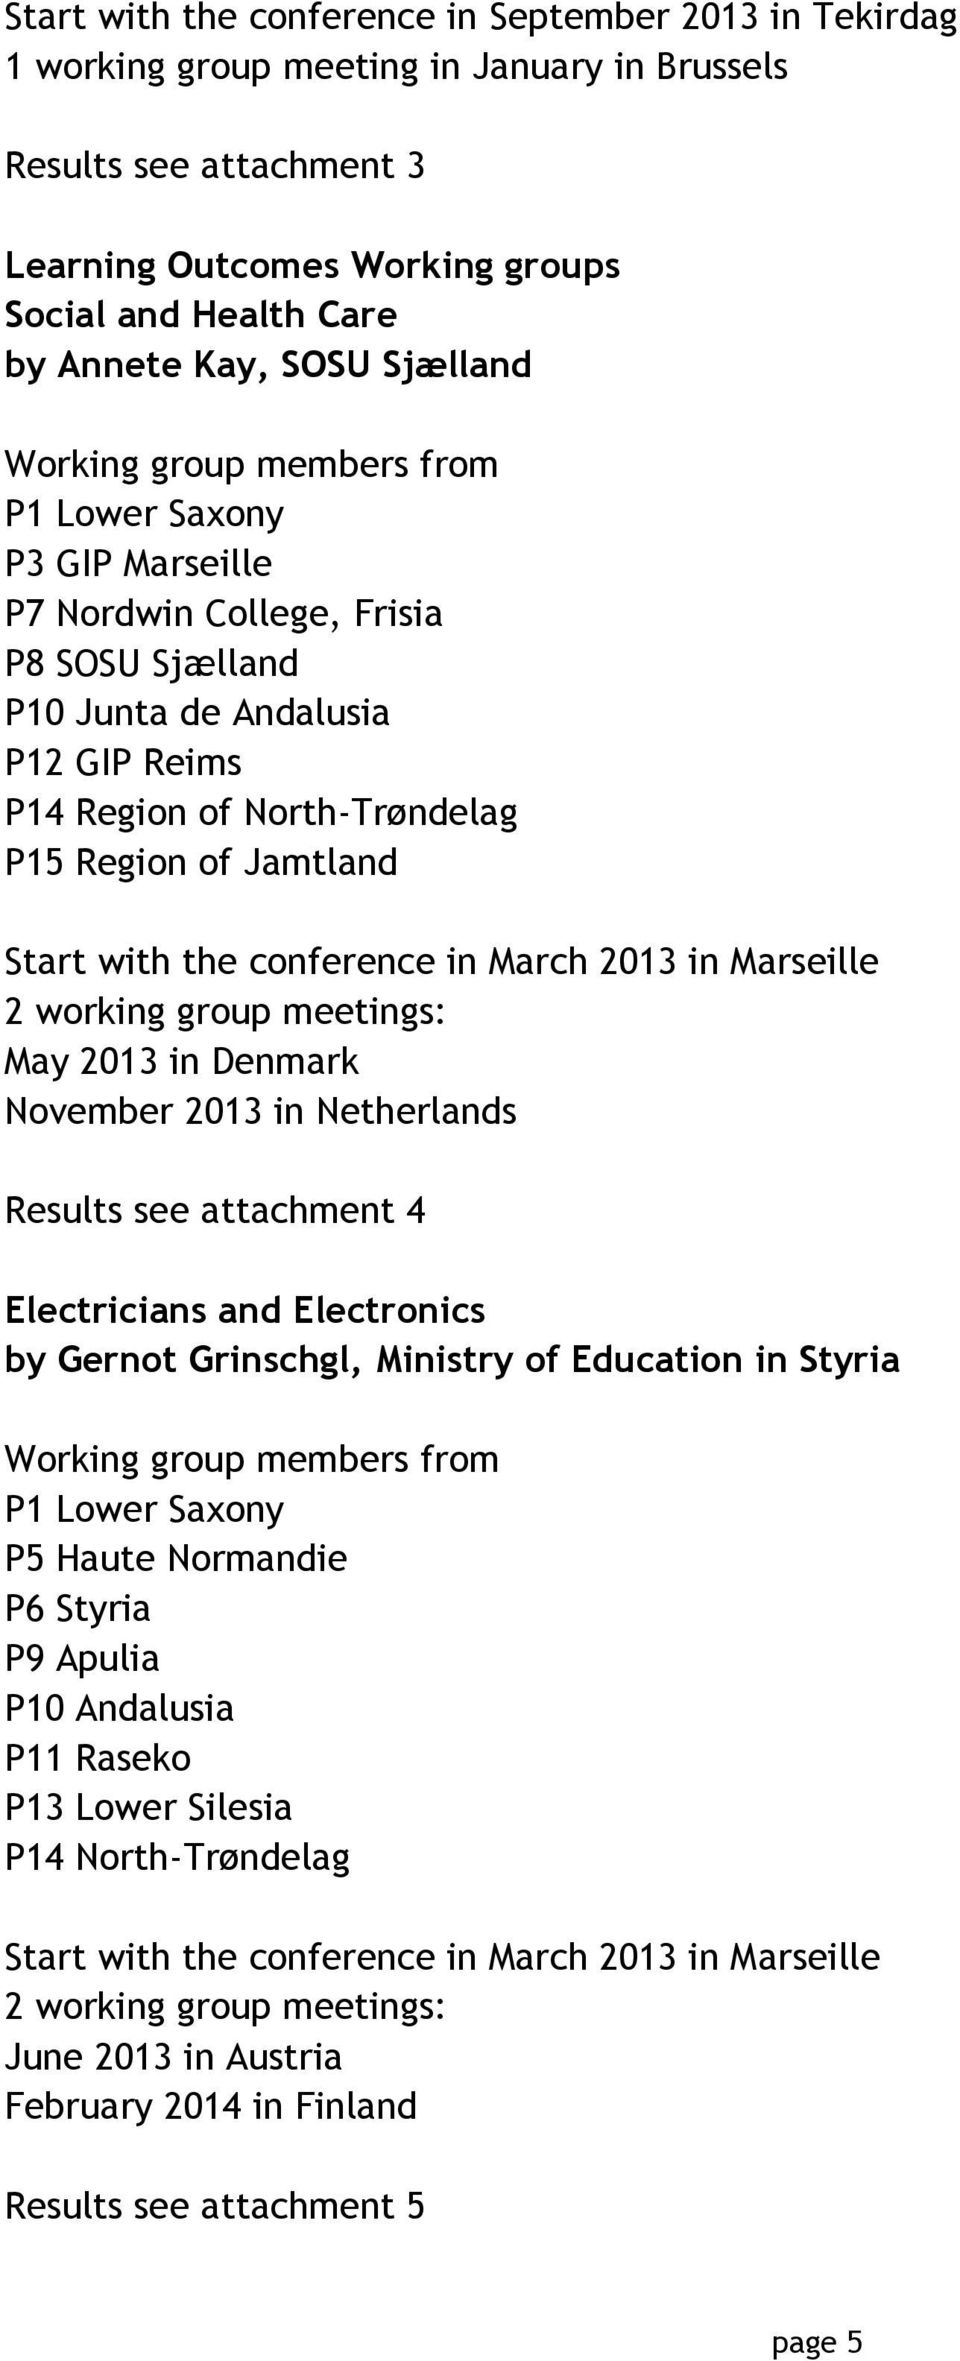 Jamtland Start with the conference in March 2013 in Marseille 2 working group meetings: May 2013 in Denmark November 2013 in Netherlands Results see attachment 4 Electricians and Electronics by